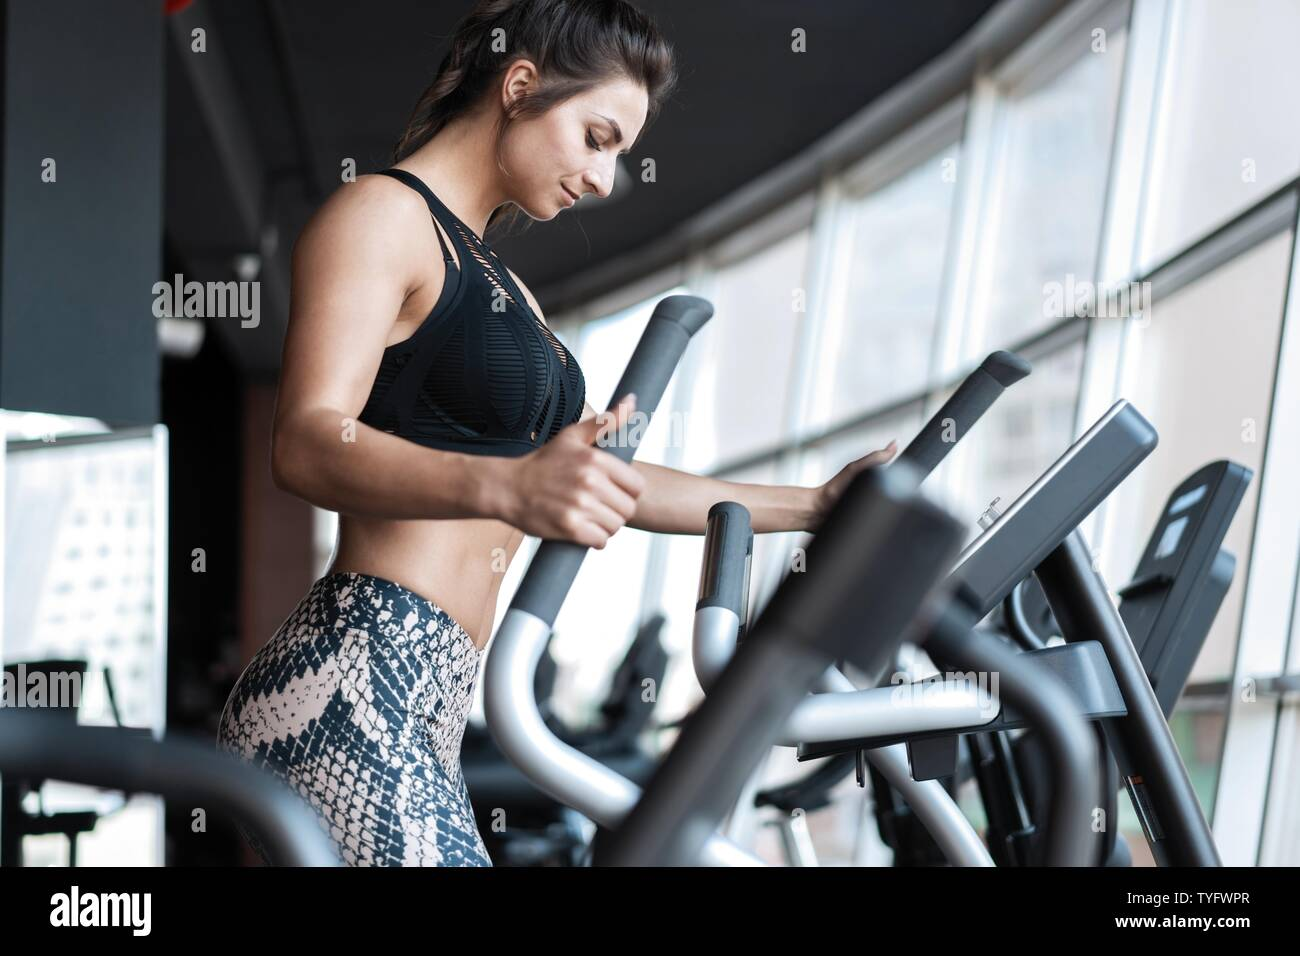 Cardio Machine High Resolution Stock Photography And Images Alamy